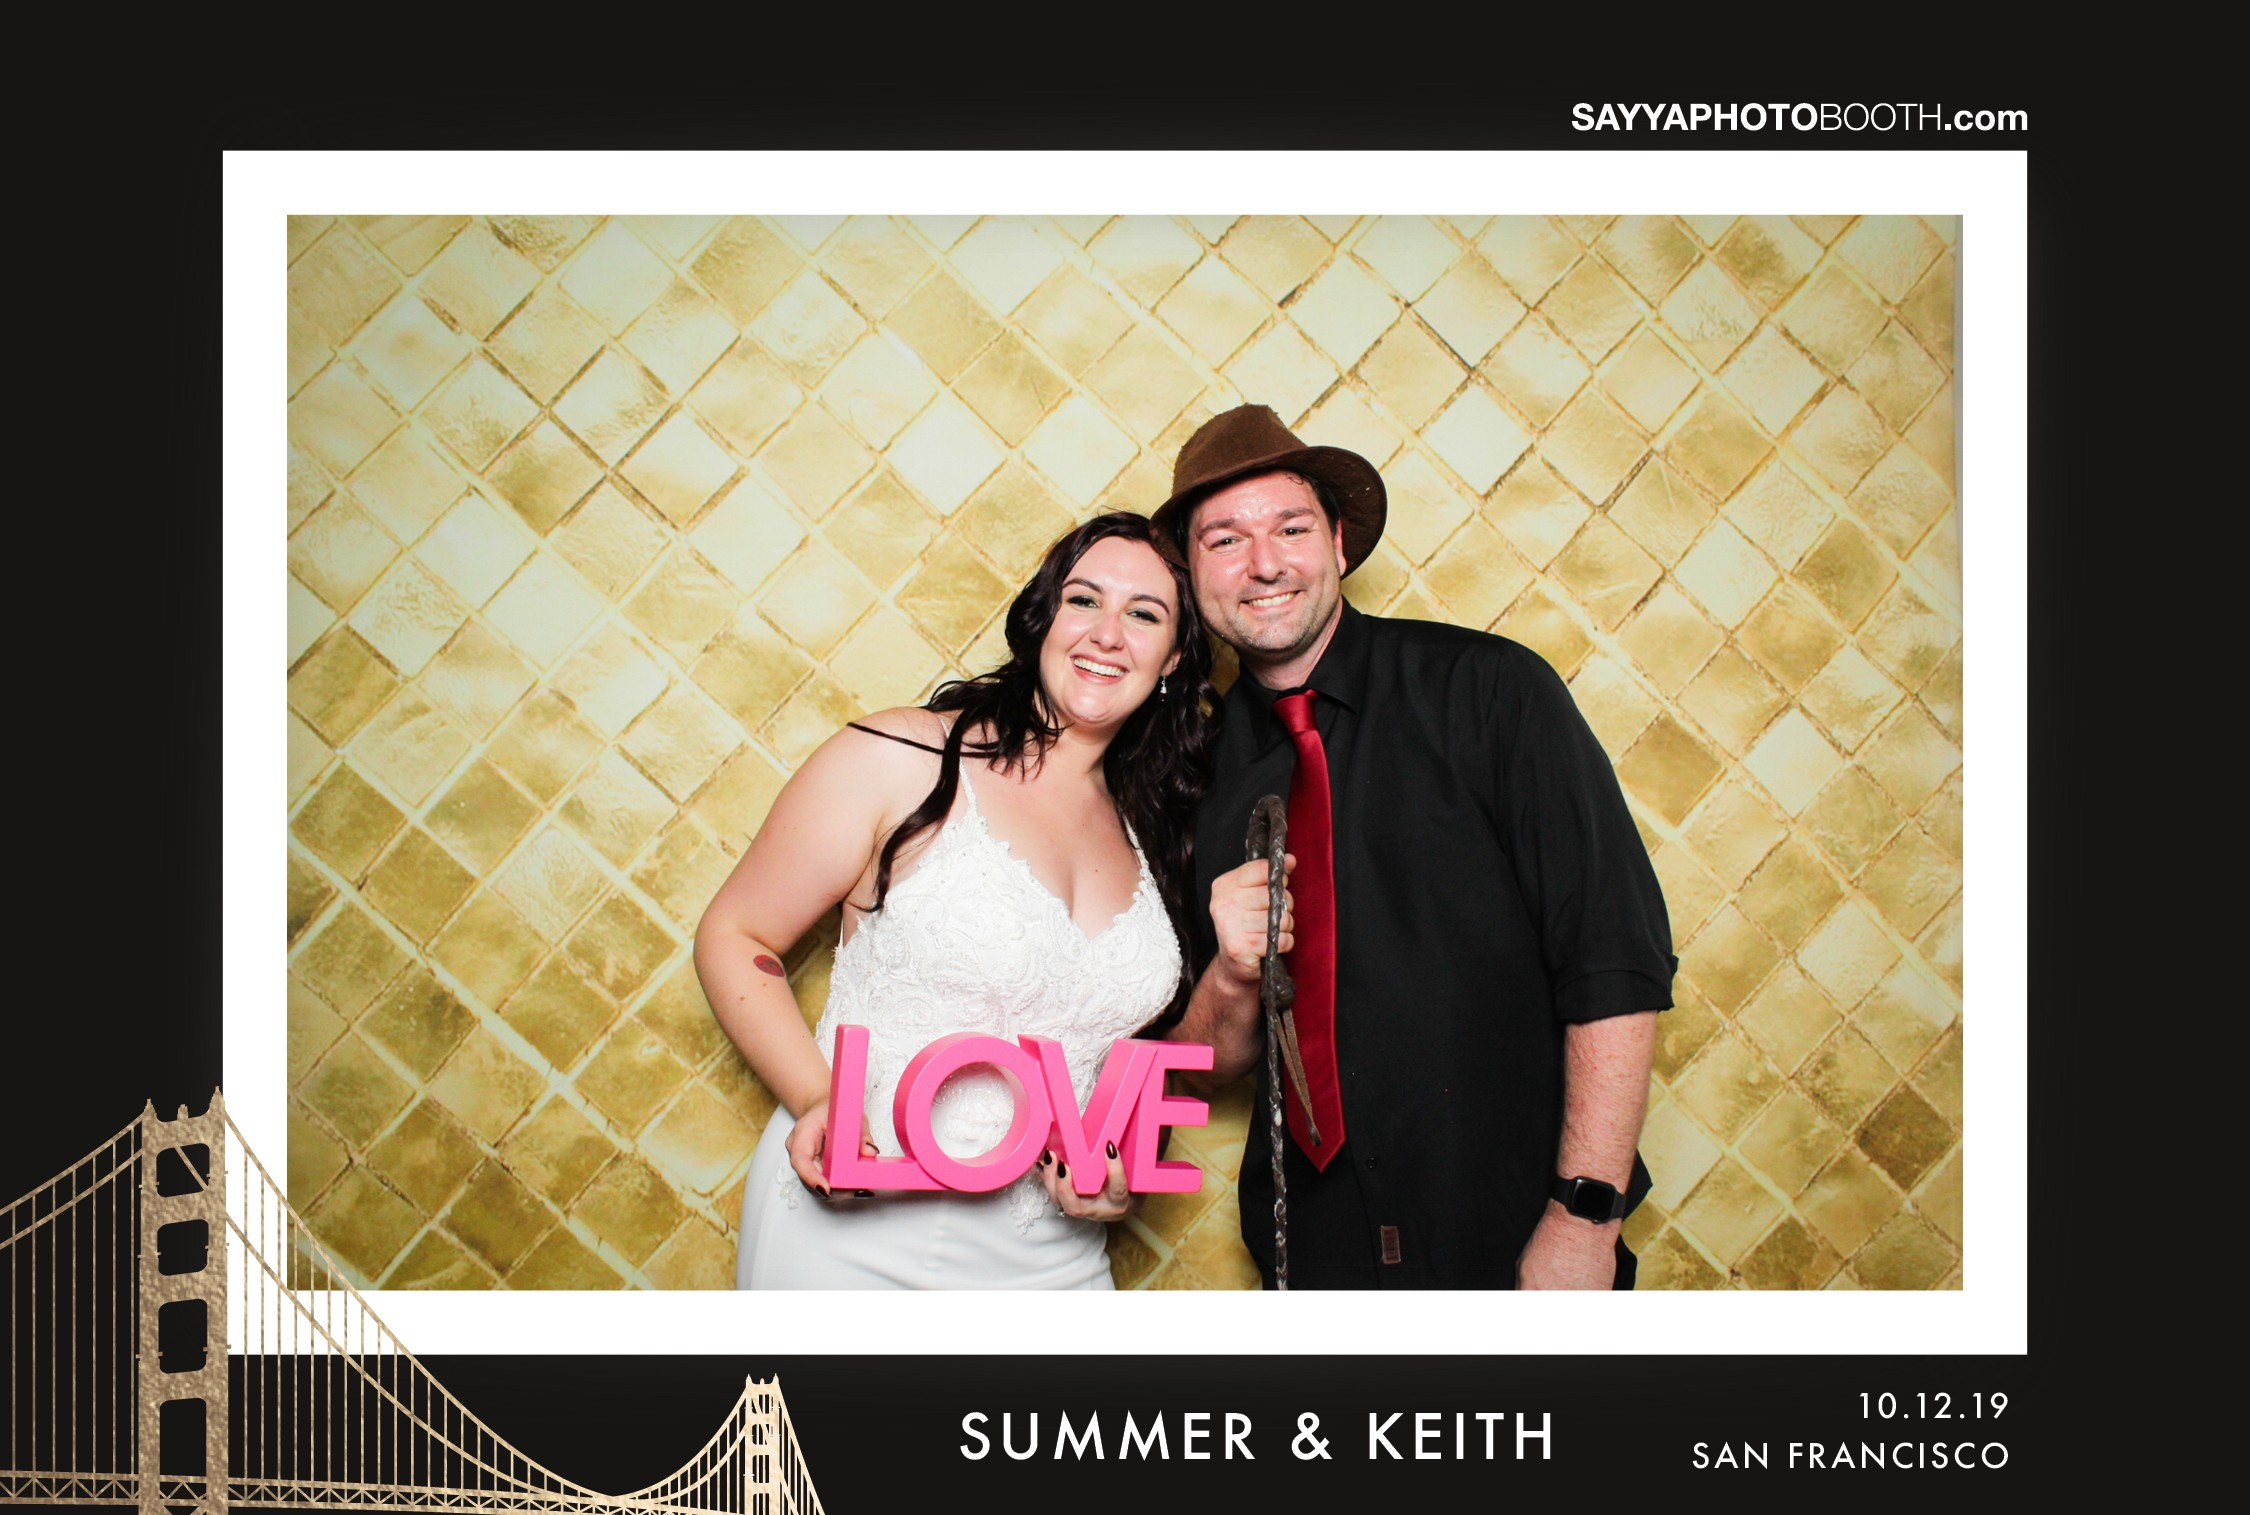 Summer & Keith's Wedding